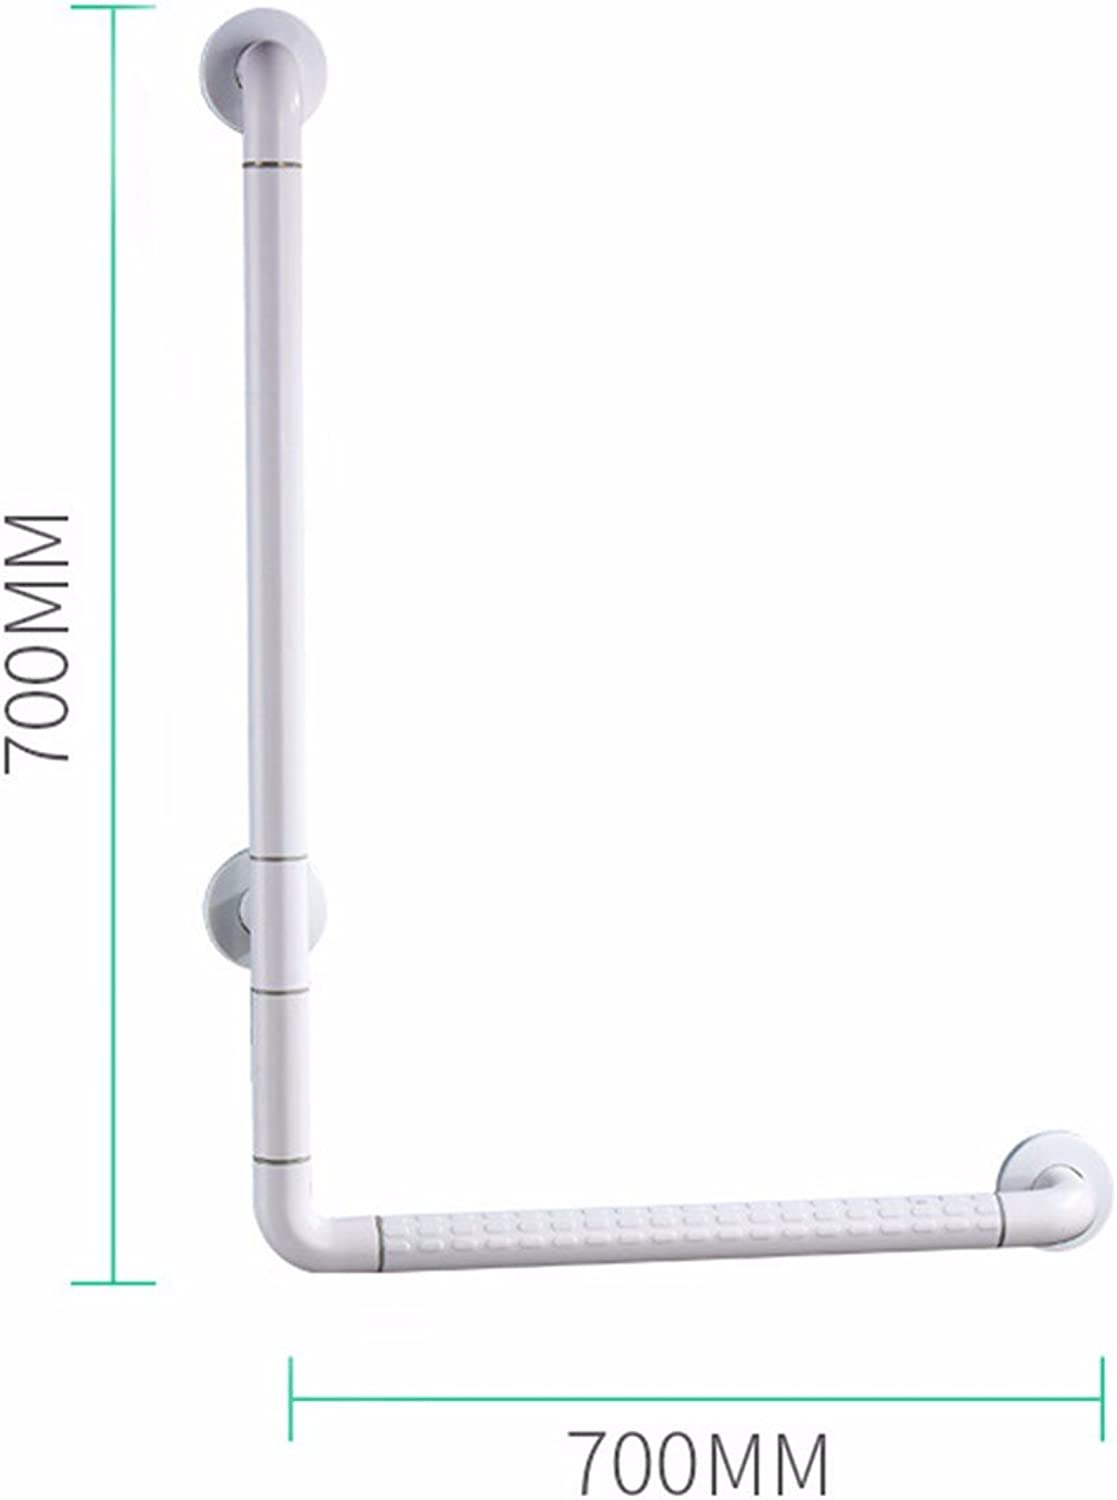 CJSHVR-Safety Handrail for Bathroom, Toilet and Toilet Without Barrier Handrails,70X70Cm,White